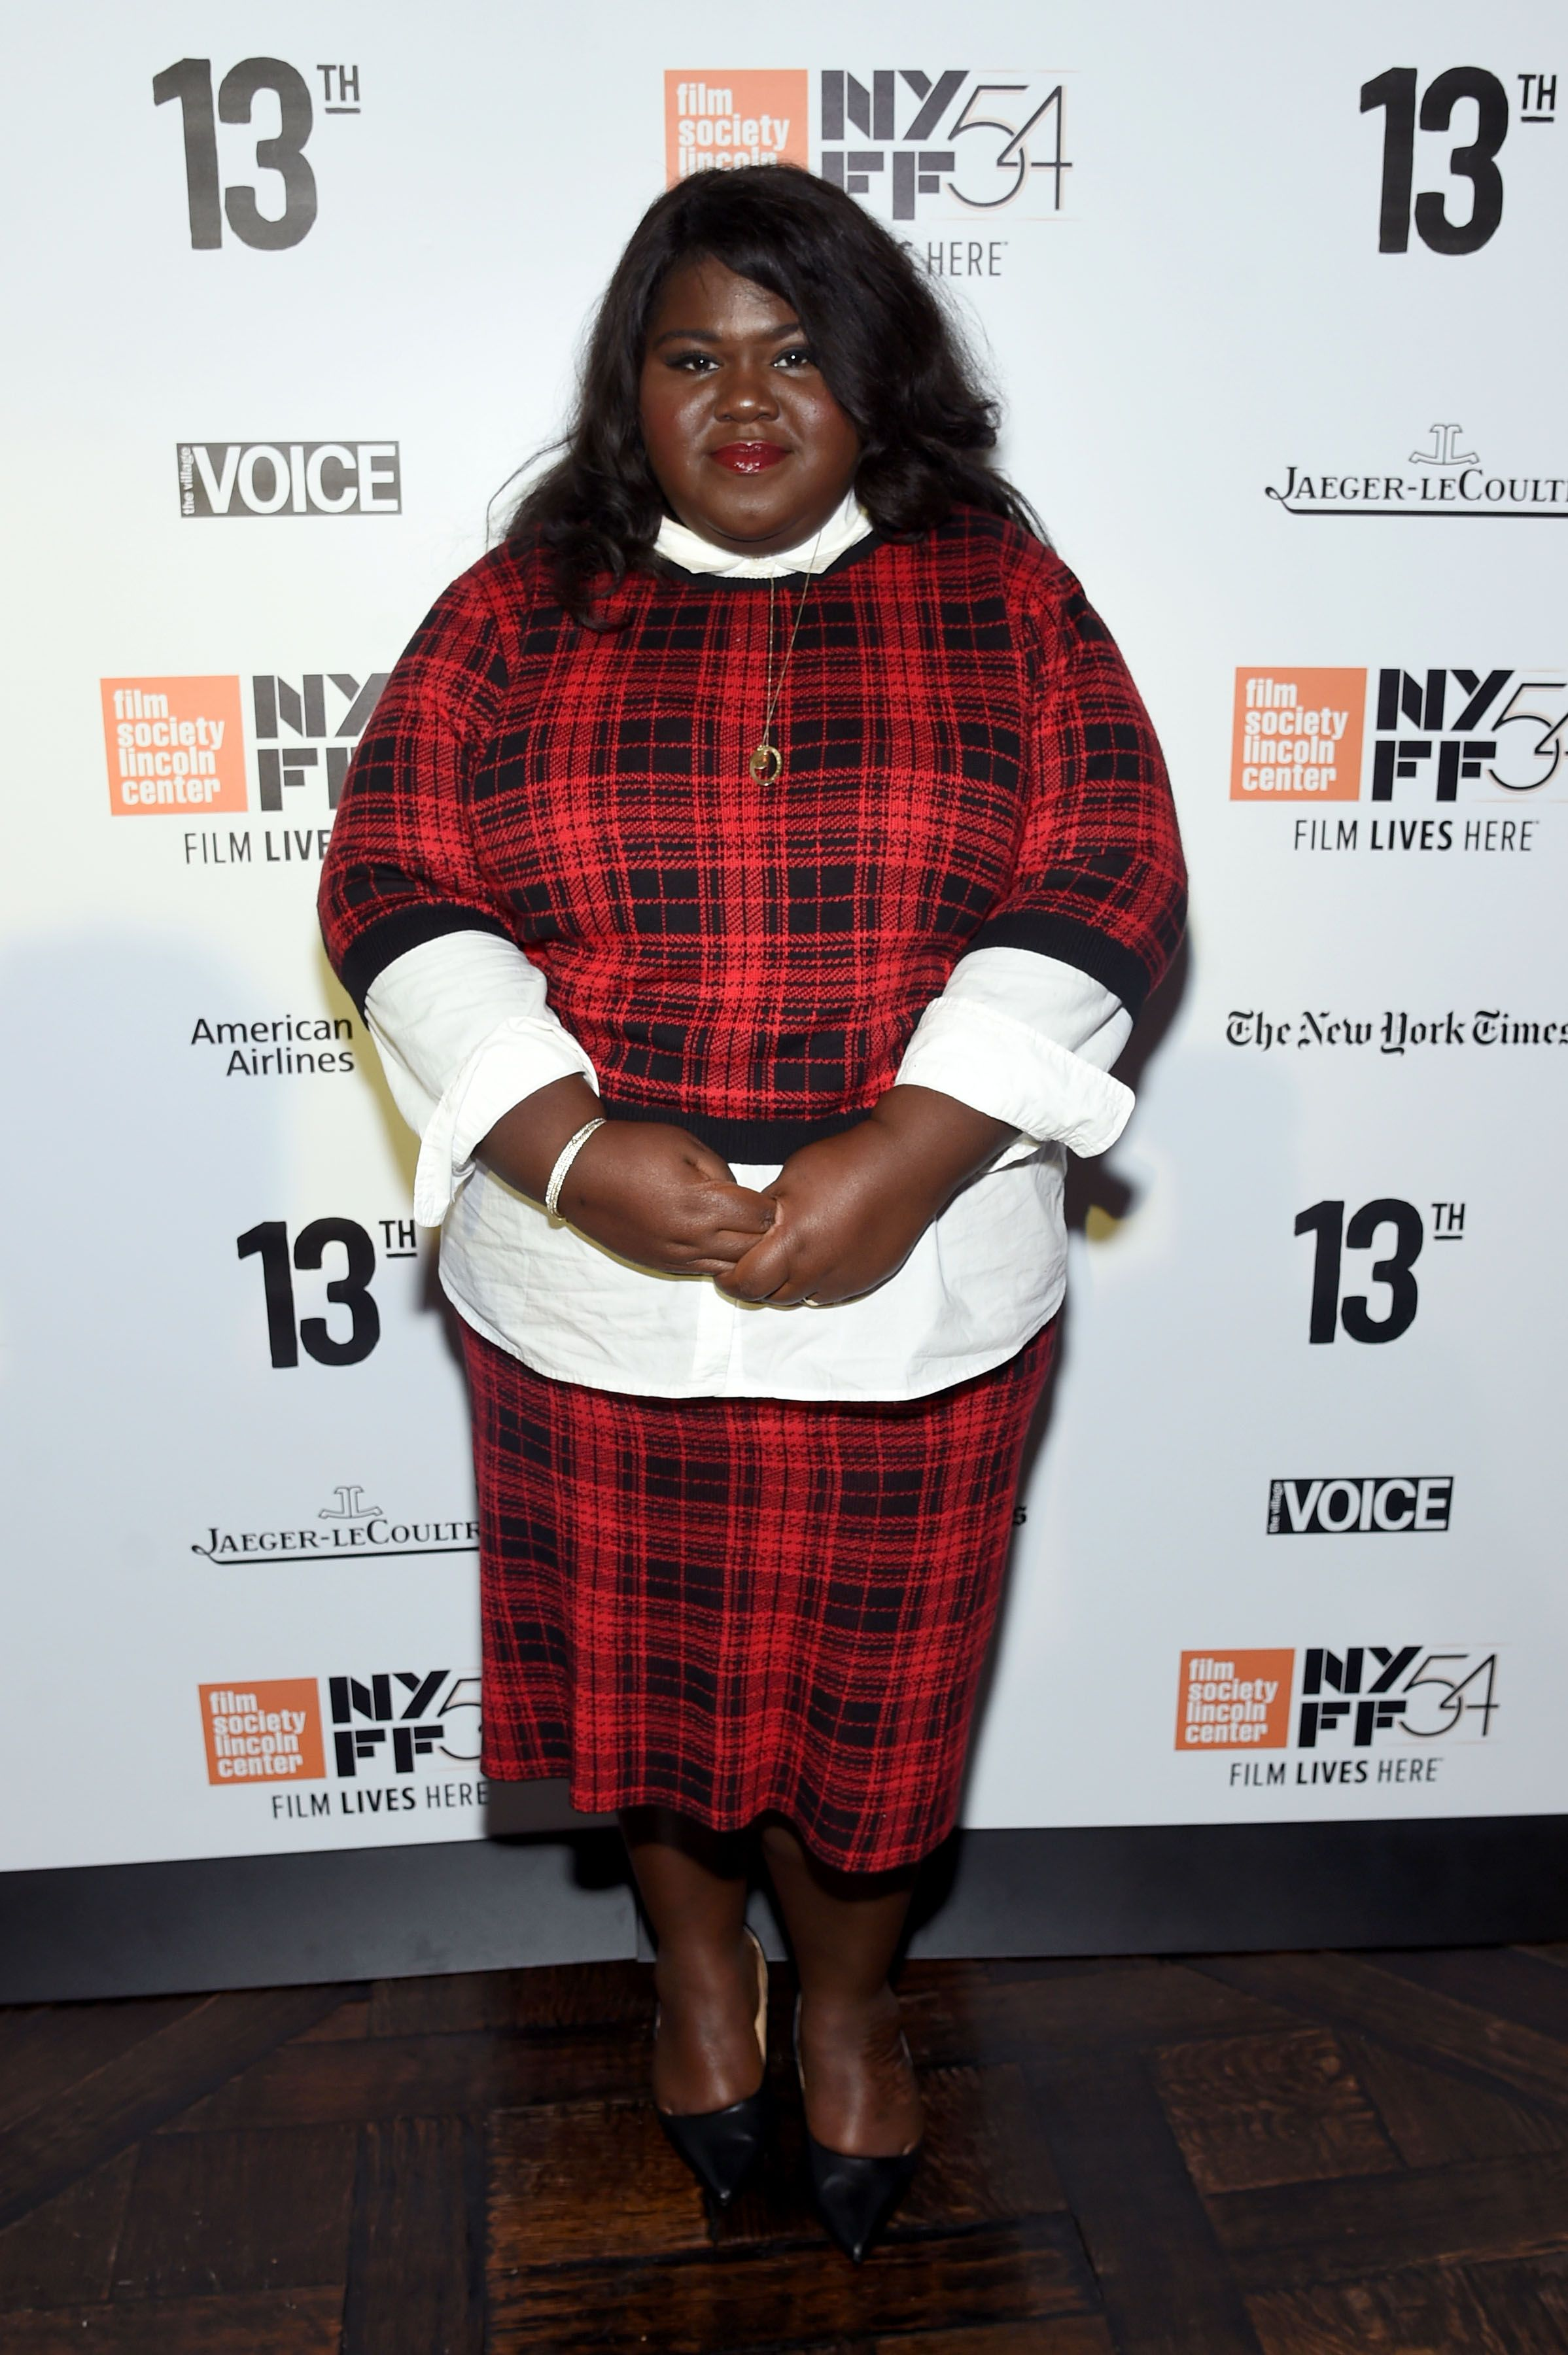 Gabourey Sidibe at the New York Film Festival Opening Night Party in 2016 in New York City | Source: Getty Images